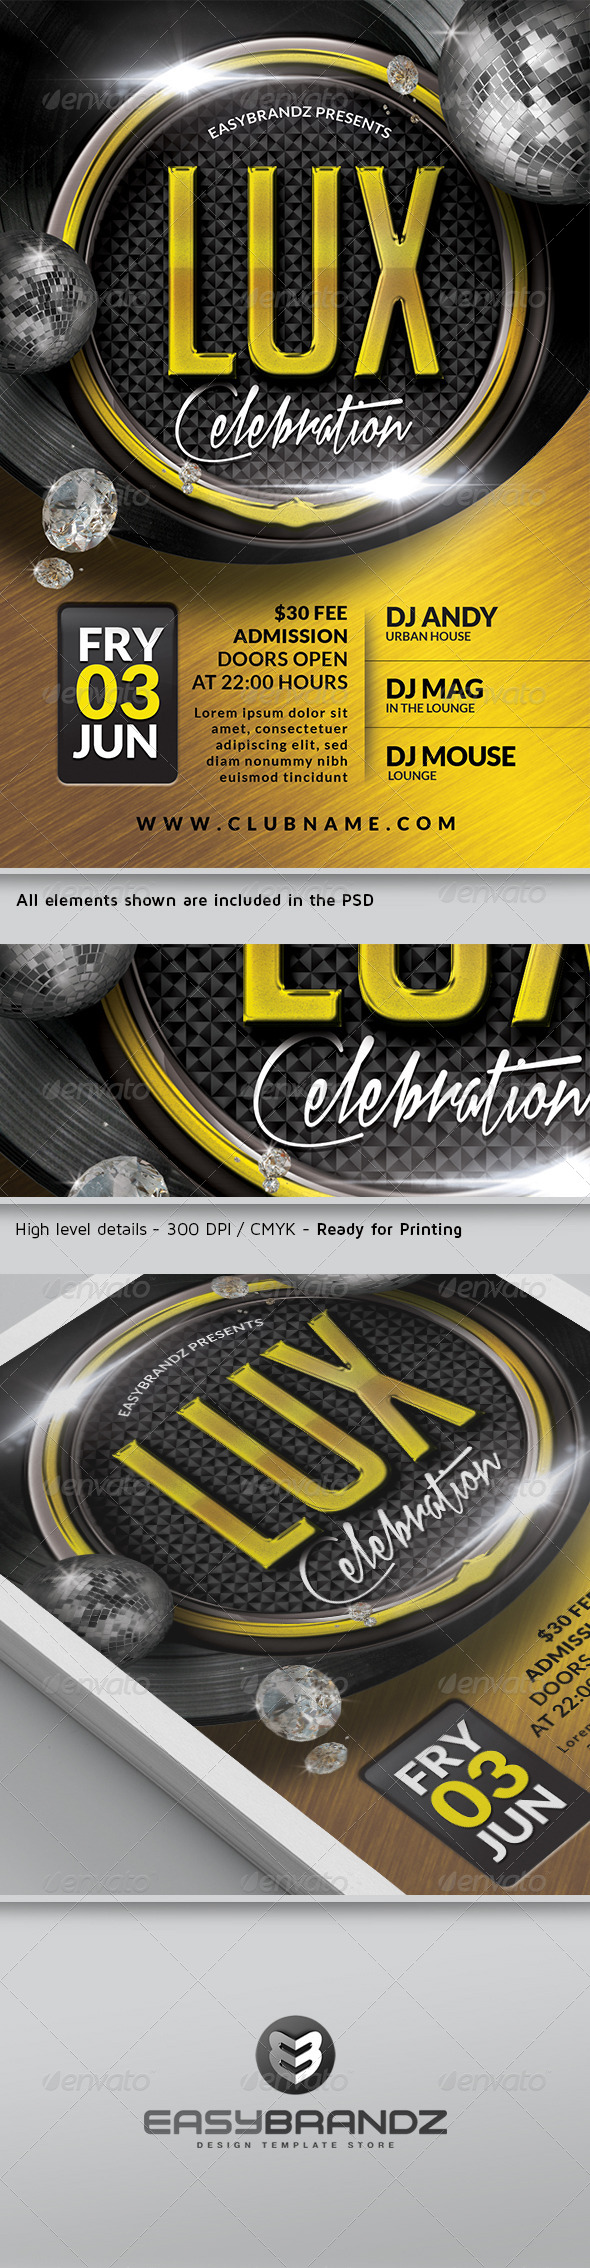 Lux Celebration Flyer Template - Events Flyers